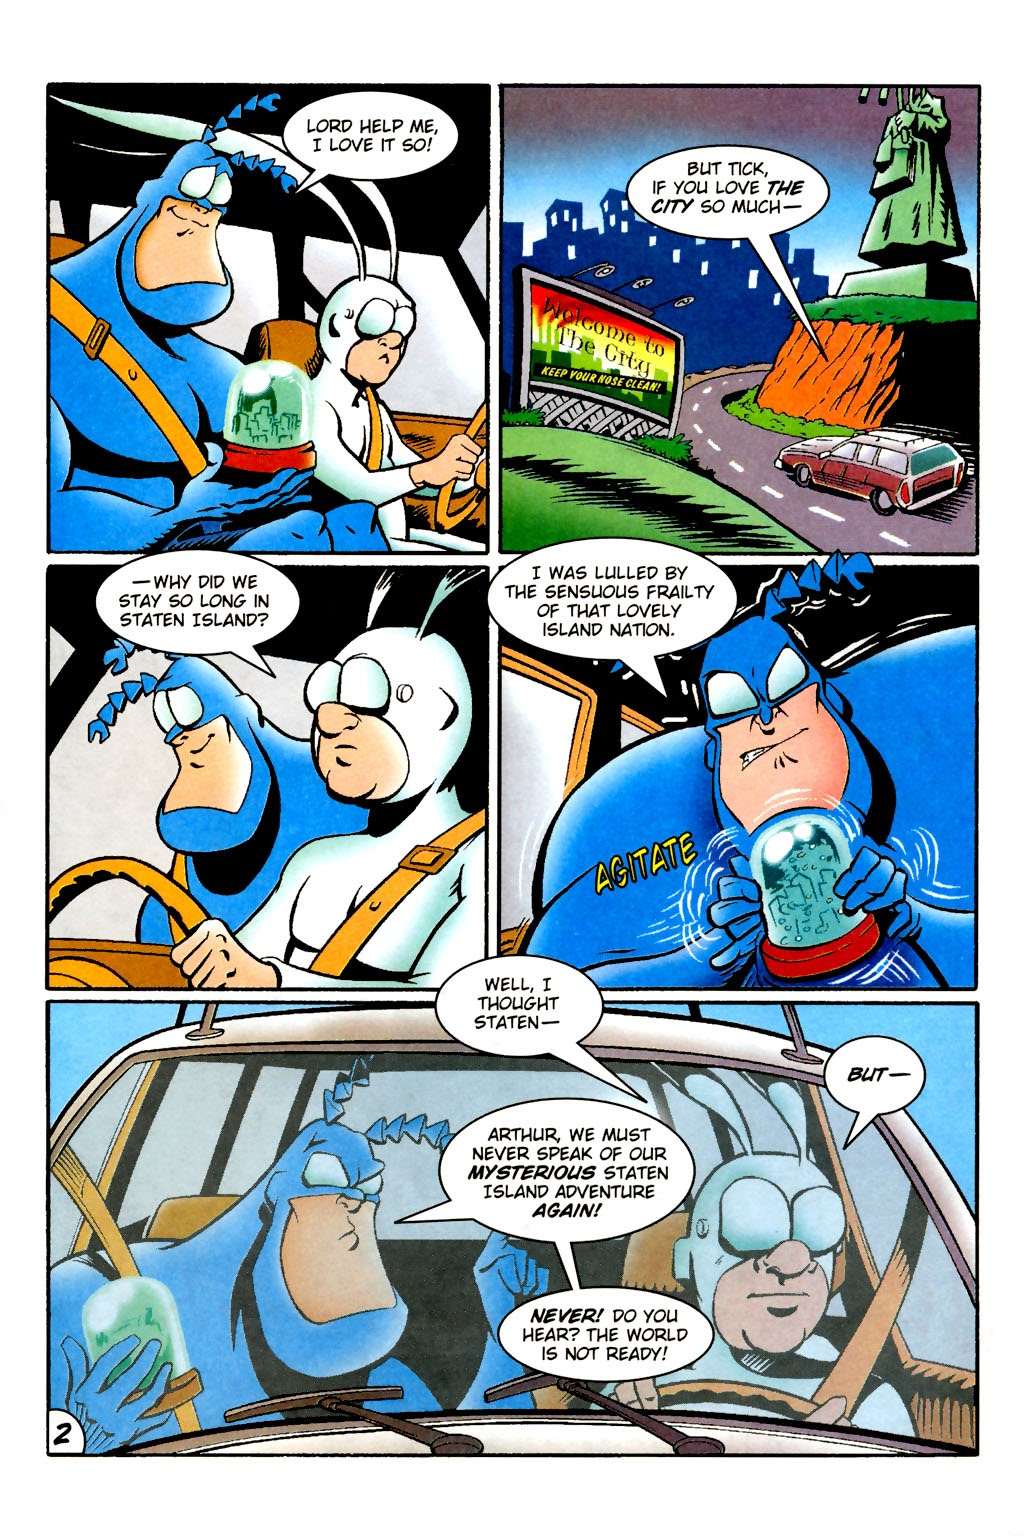 Read online The Tick: Days of Drama comic -  Issue #1 - 6